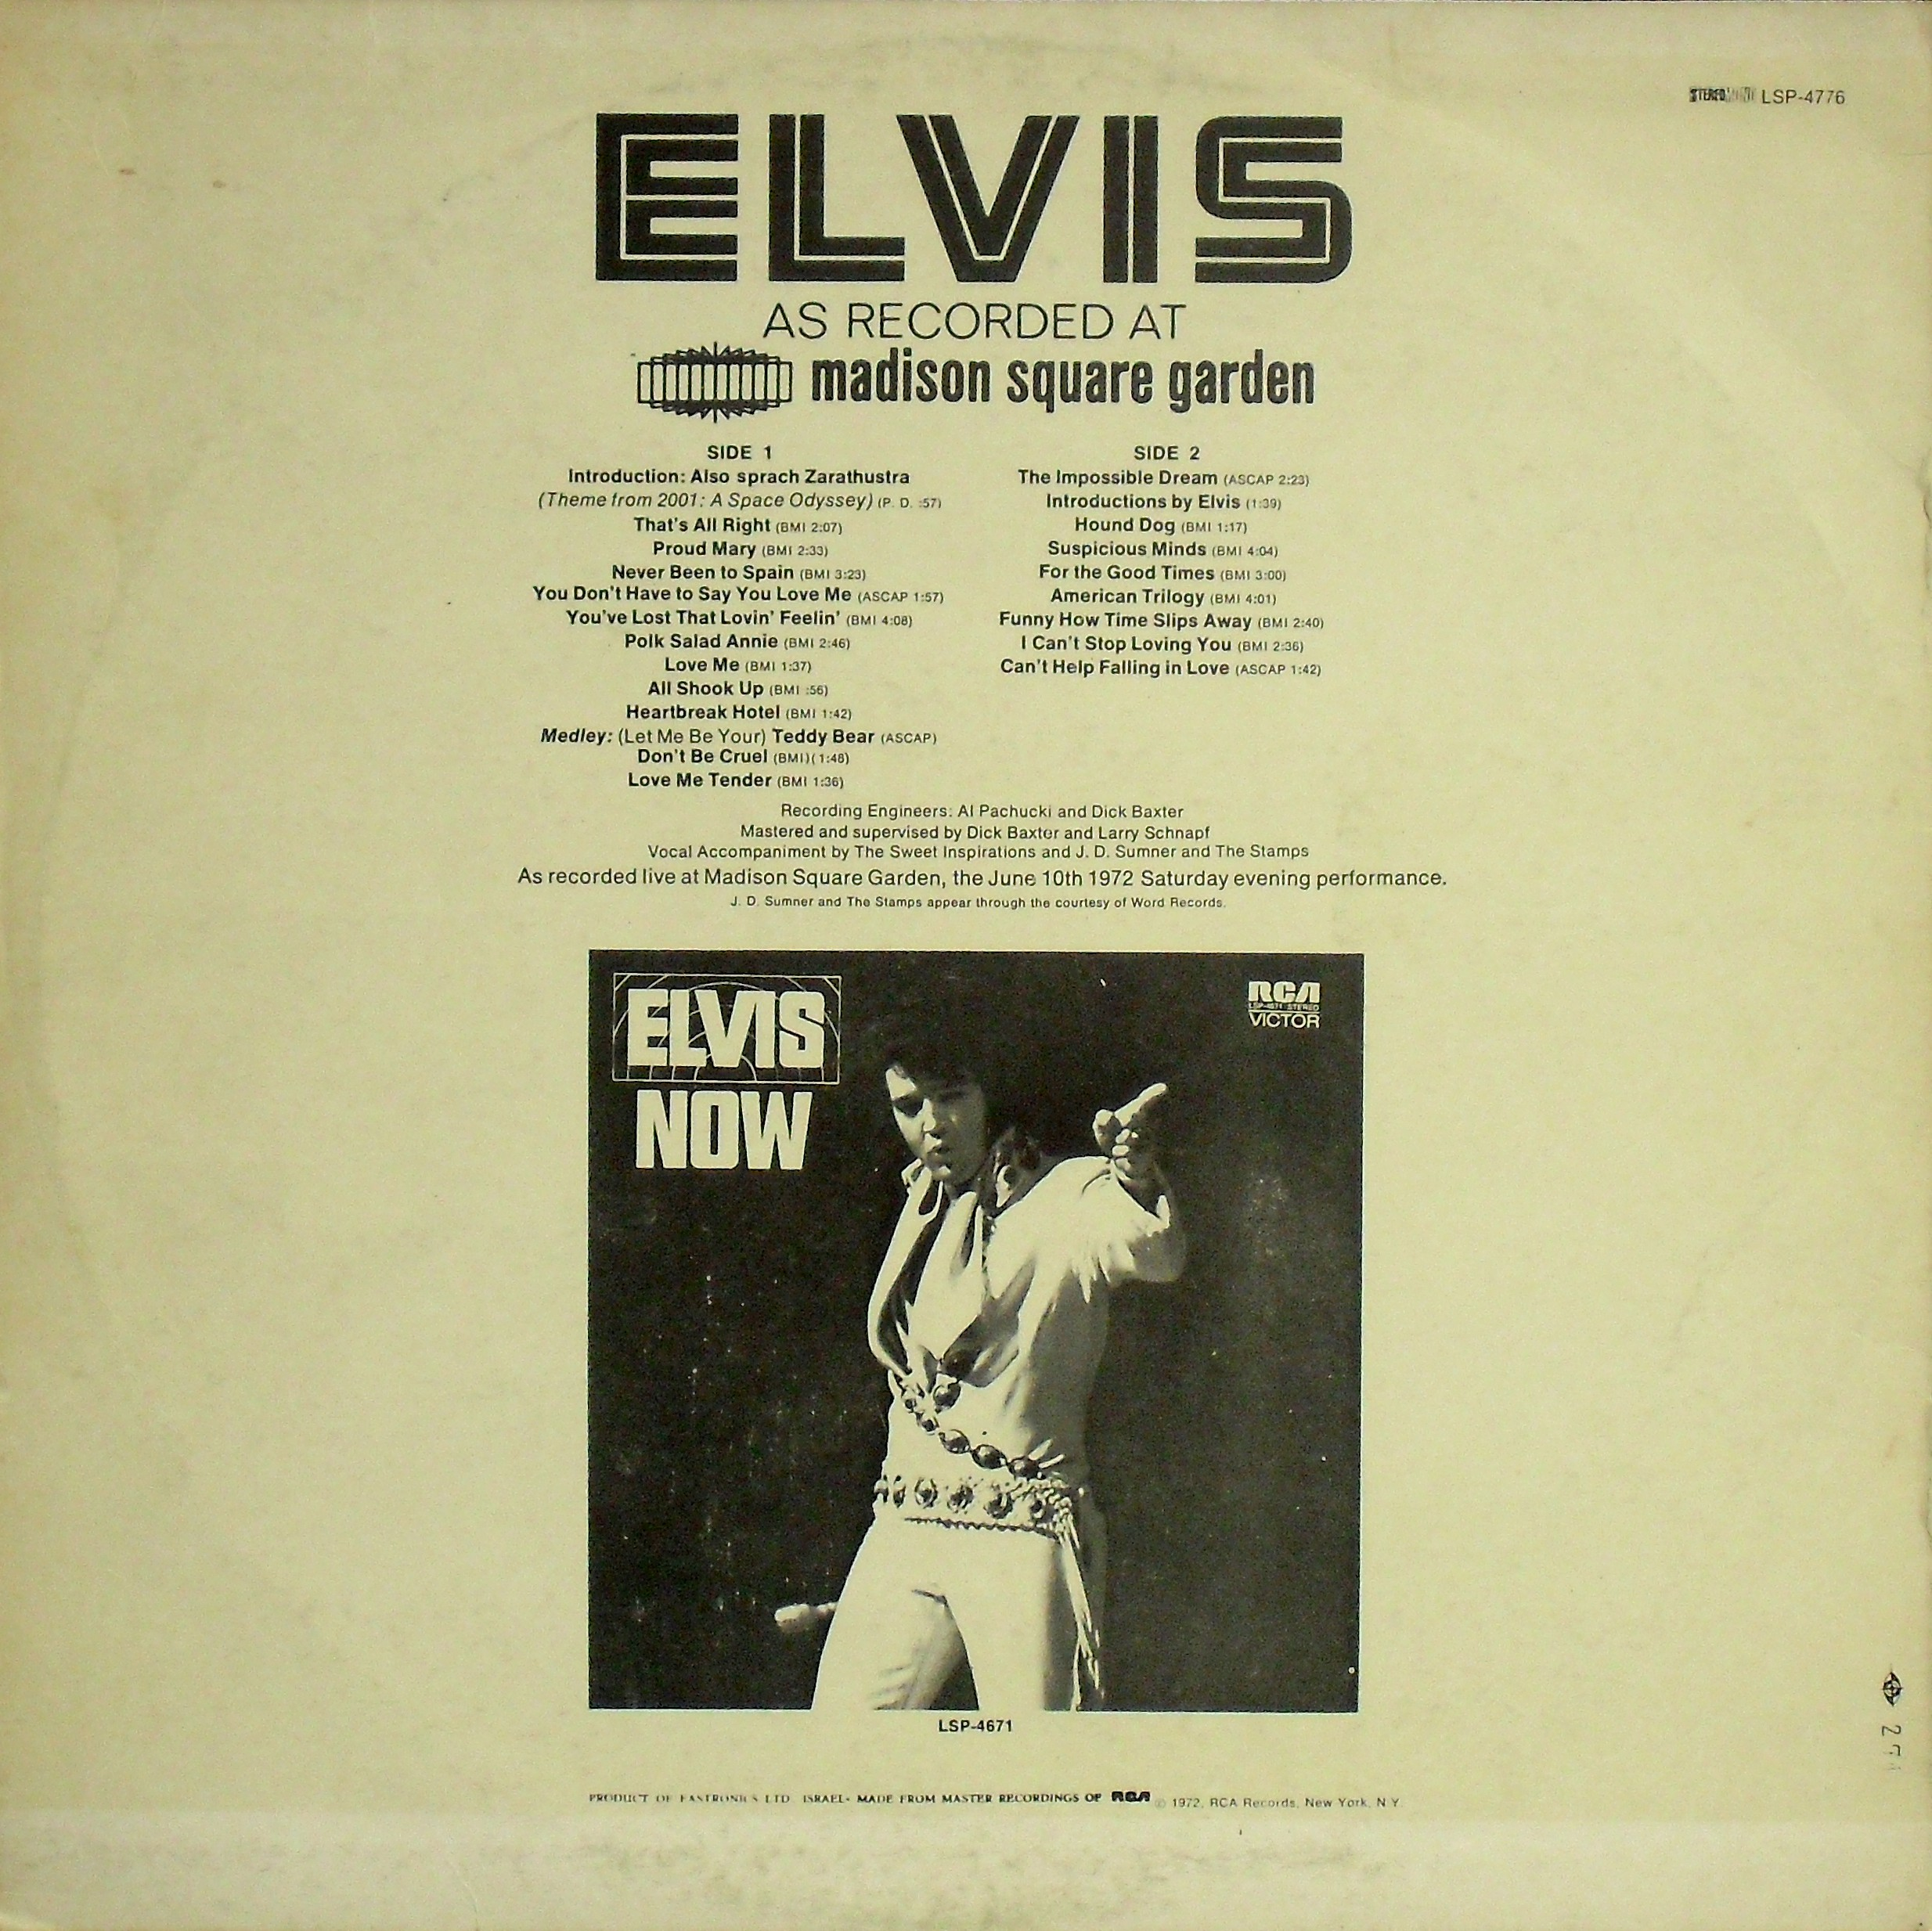 ELVIS AS RECORDED AT MADISON SQUARE GARDEN 02rosys